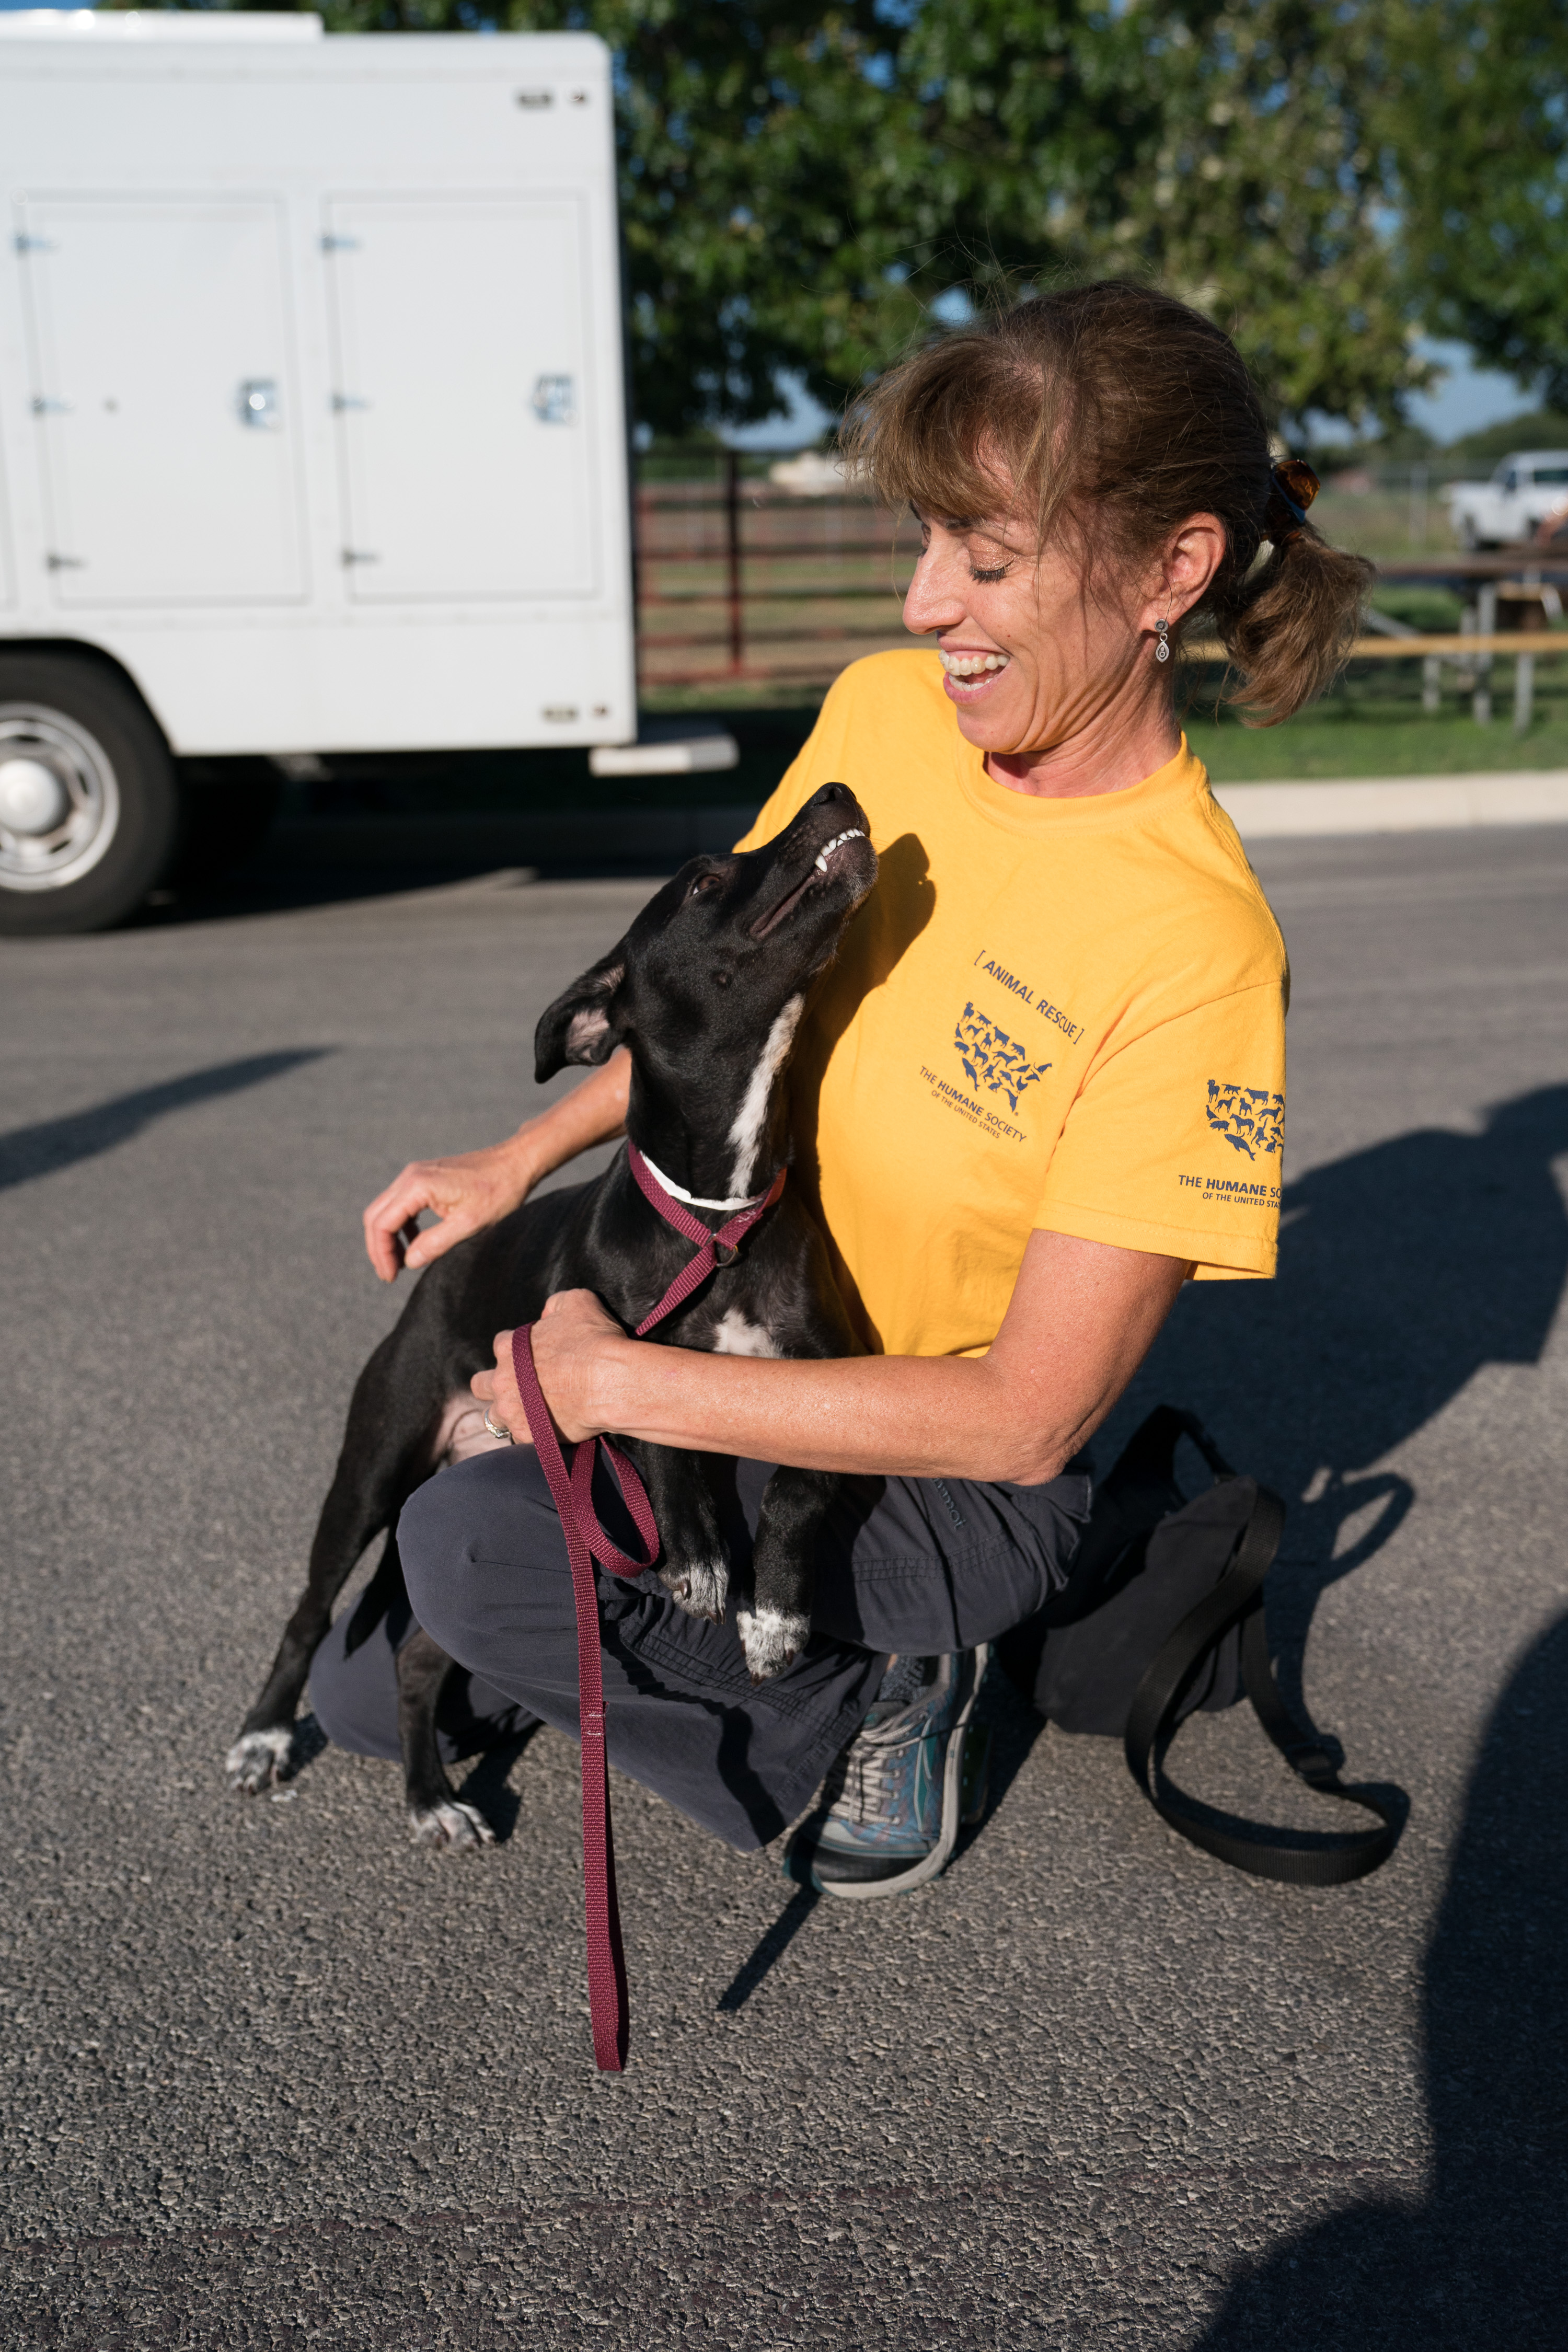 Humane Society of the United States District Leader Shana Ellison interacts with a puppy during The HSUS San Antonio Transport, Tuesday, Aug. 29, 2017, in San Antonio. Approximately one hundred dogs are being transported by Wings of Rescue to the east coast for adoption. (Darren Abate/AP Images for The Humane Society of the United States)